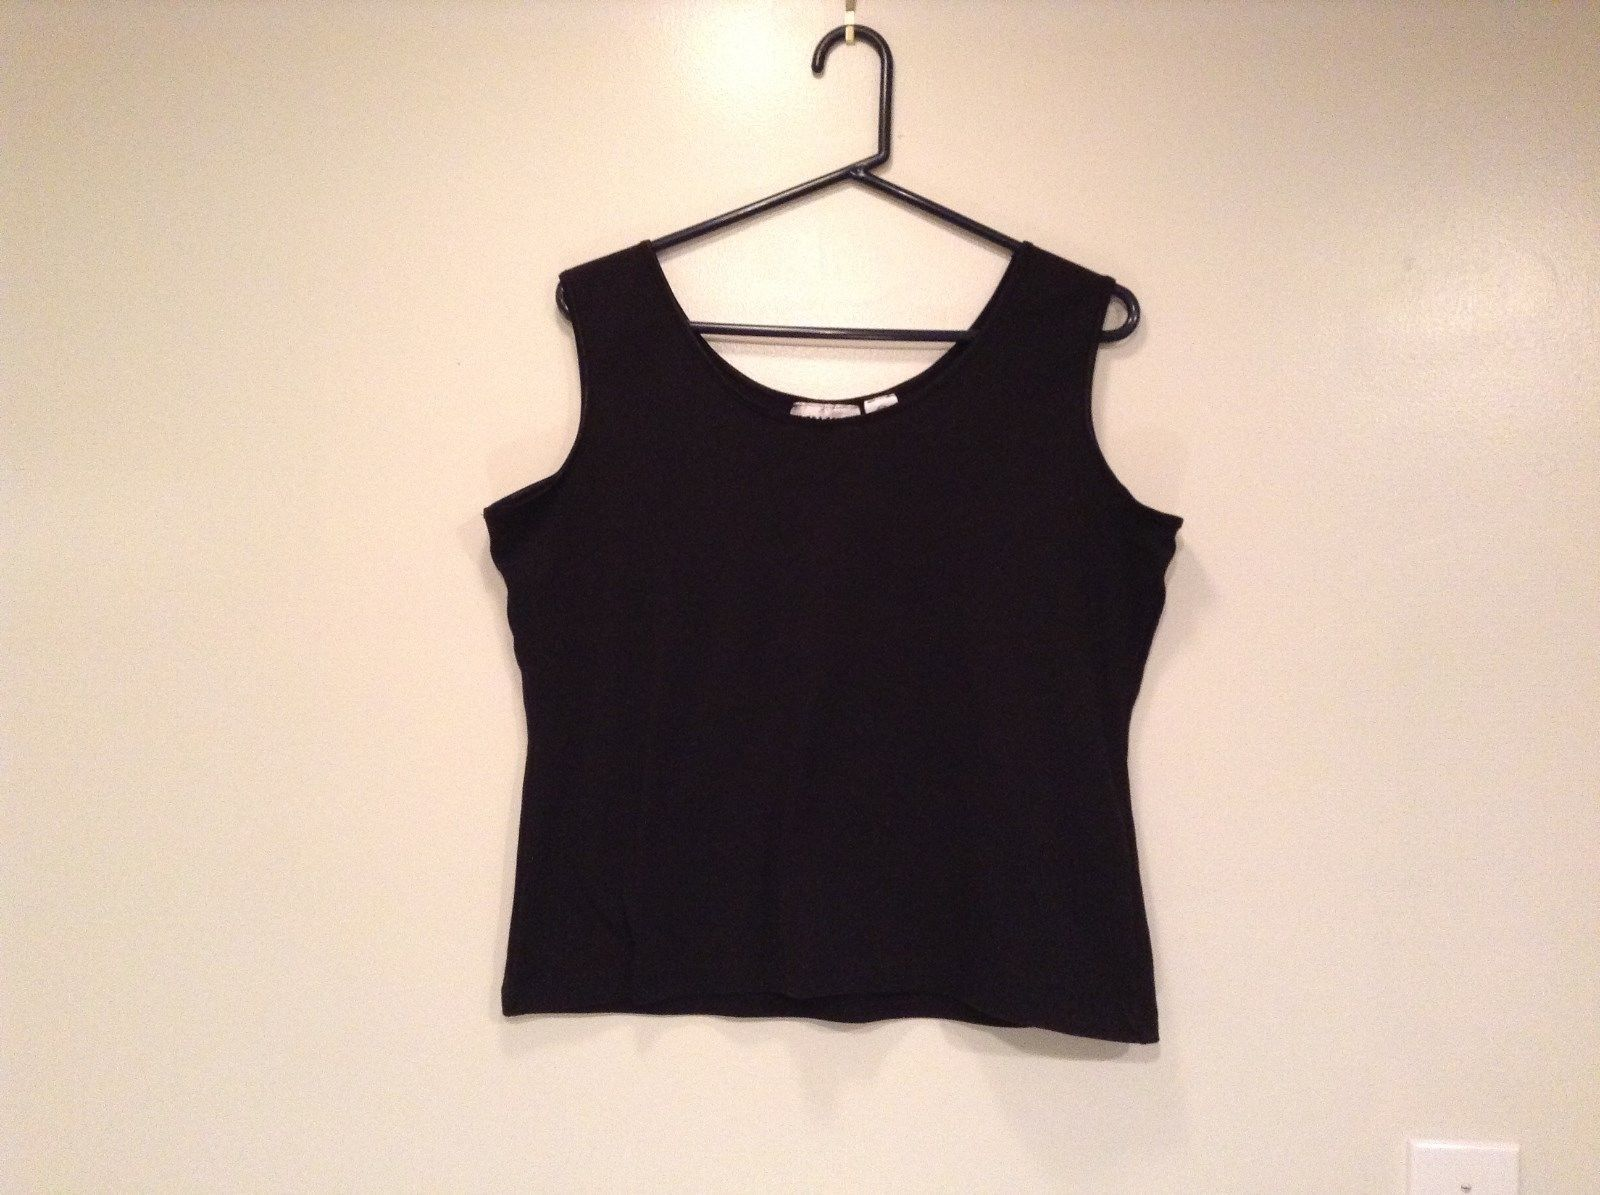 Extra Touch Black Sleeveless Tank Top Size 2X Scoop Neck Cotton Spandex Blend